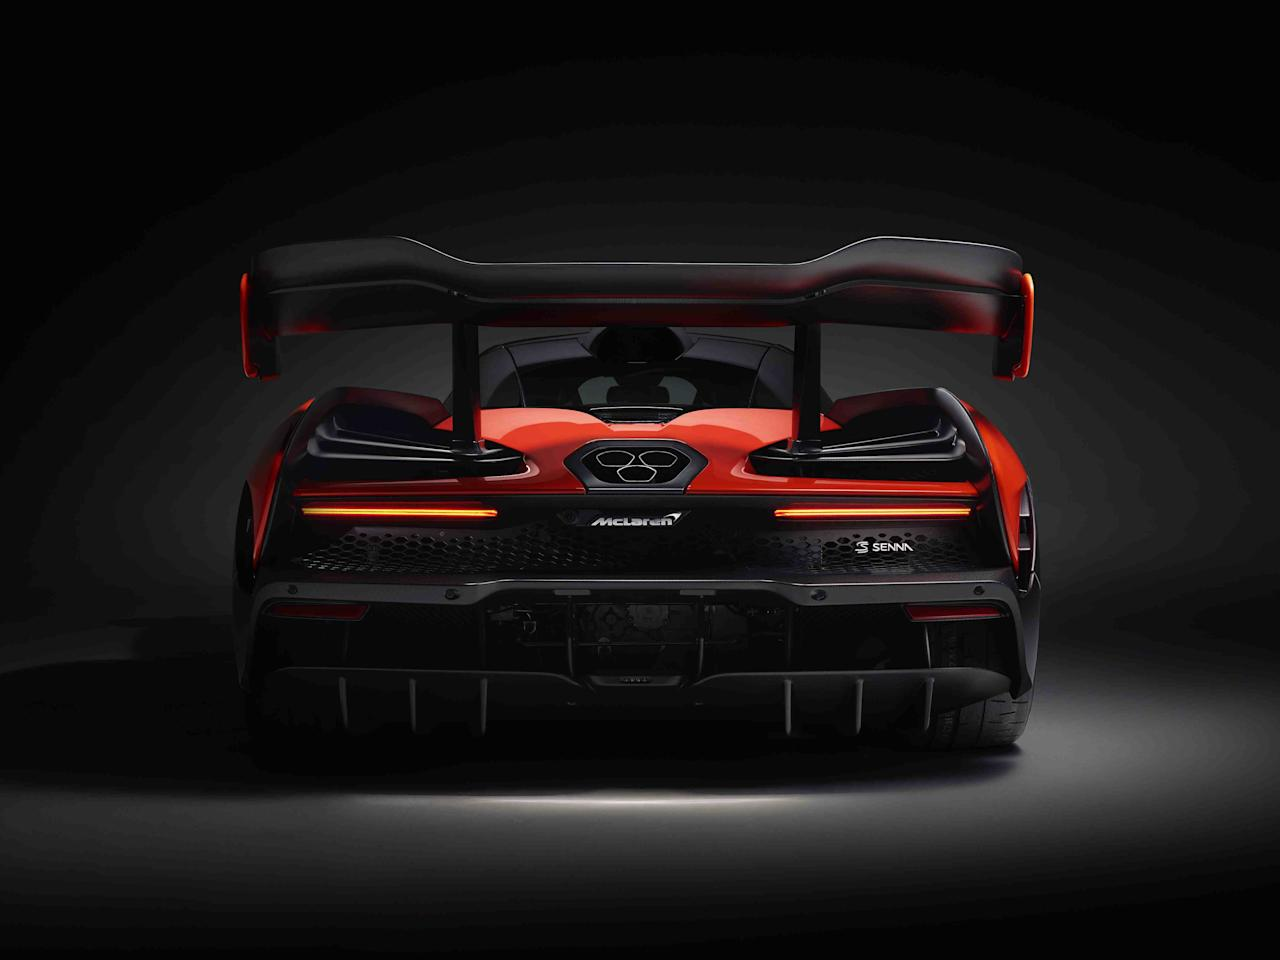 <p>Jut 500 McLaren Senna's will be made – and all will be hand-built at McLaren's factory in Woking, Surrey. All 500 have already been snapped up. </p>